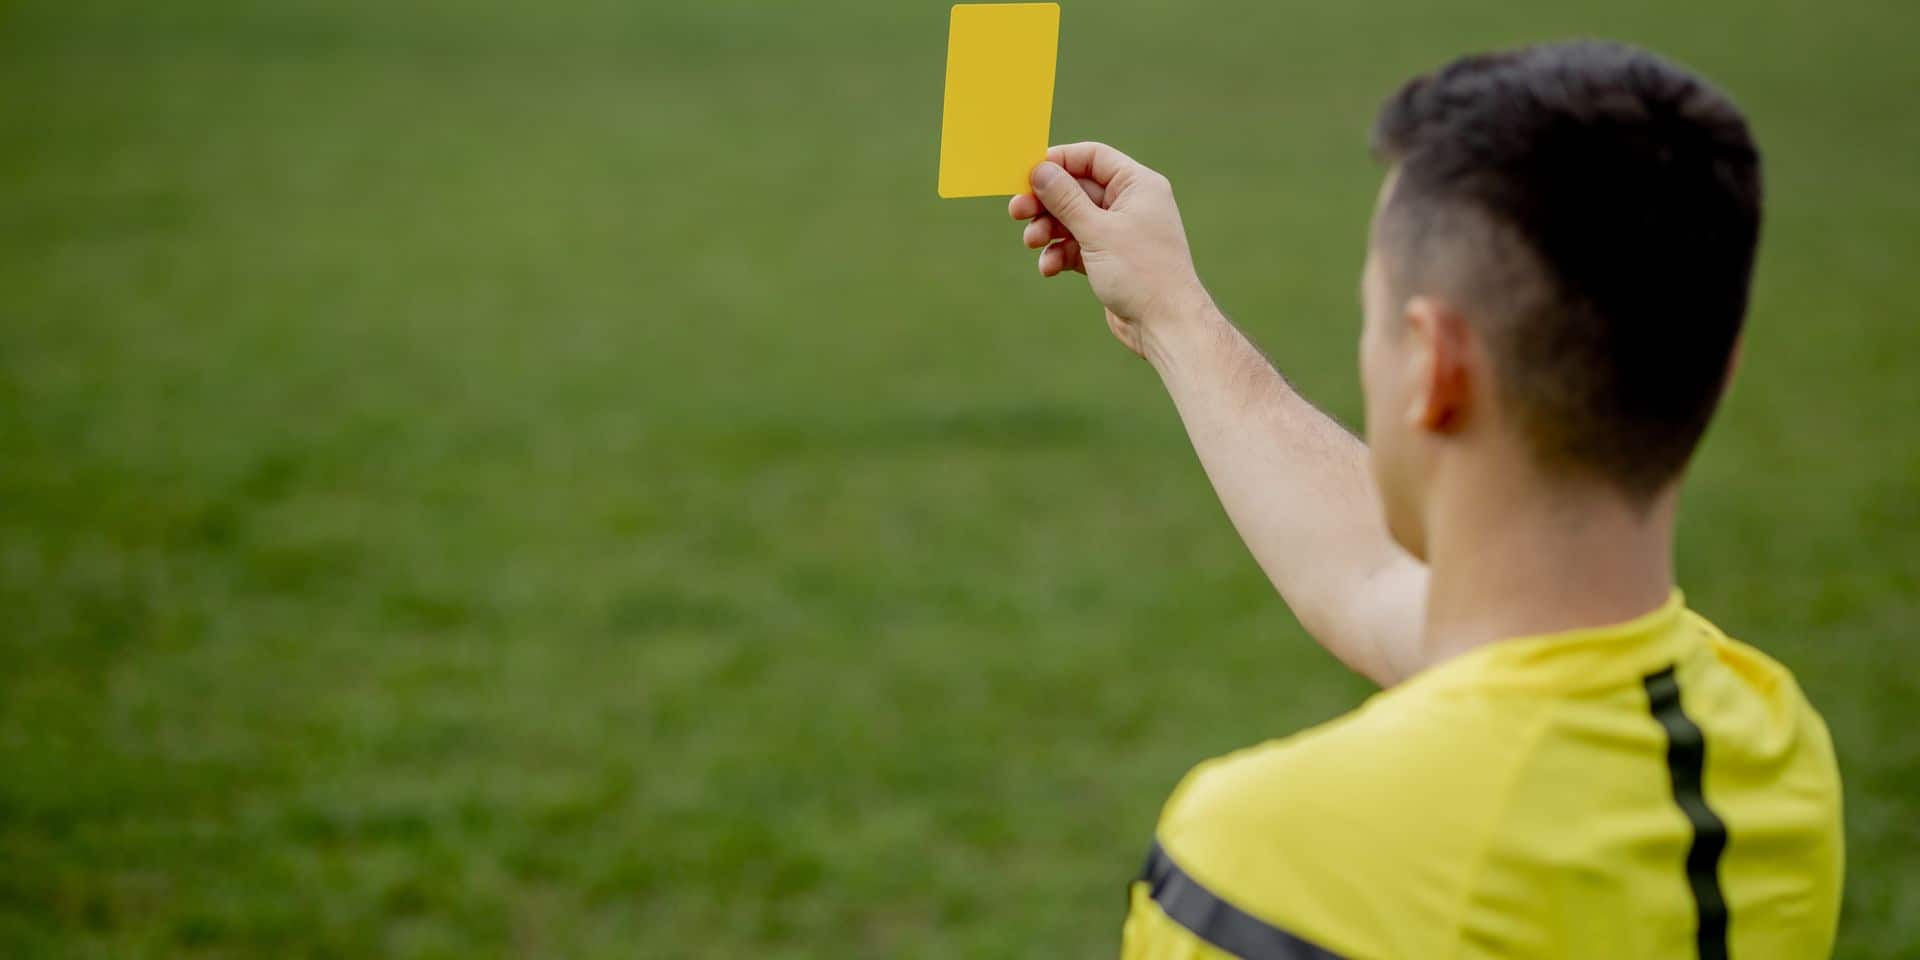 Referee,Showing,A,Red,Card,To,A,Displeased,Football,Or